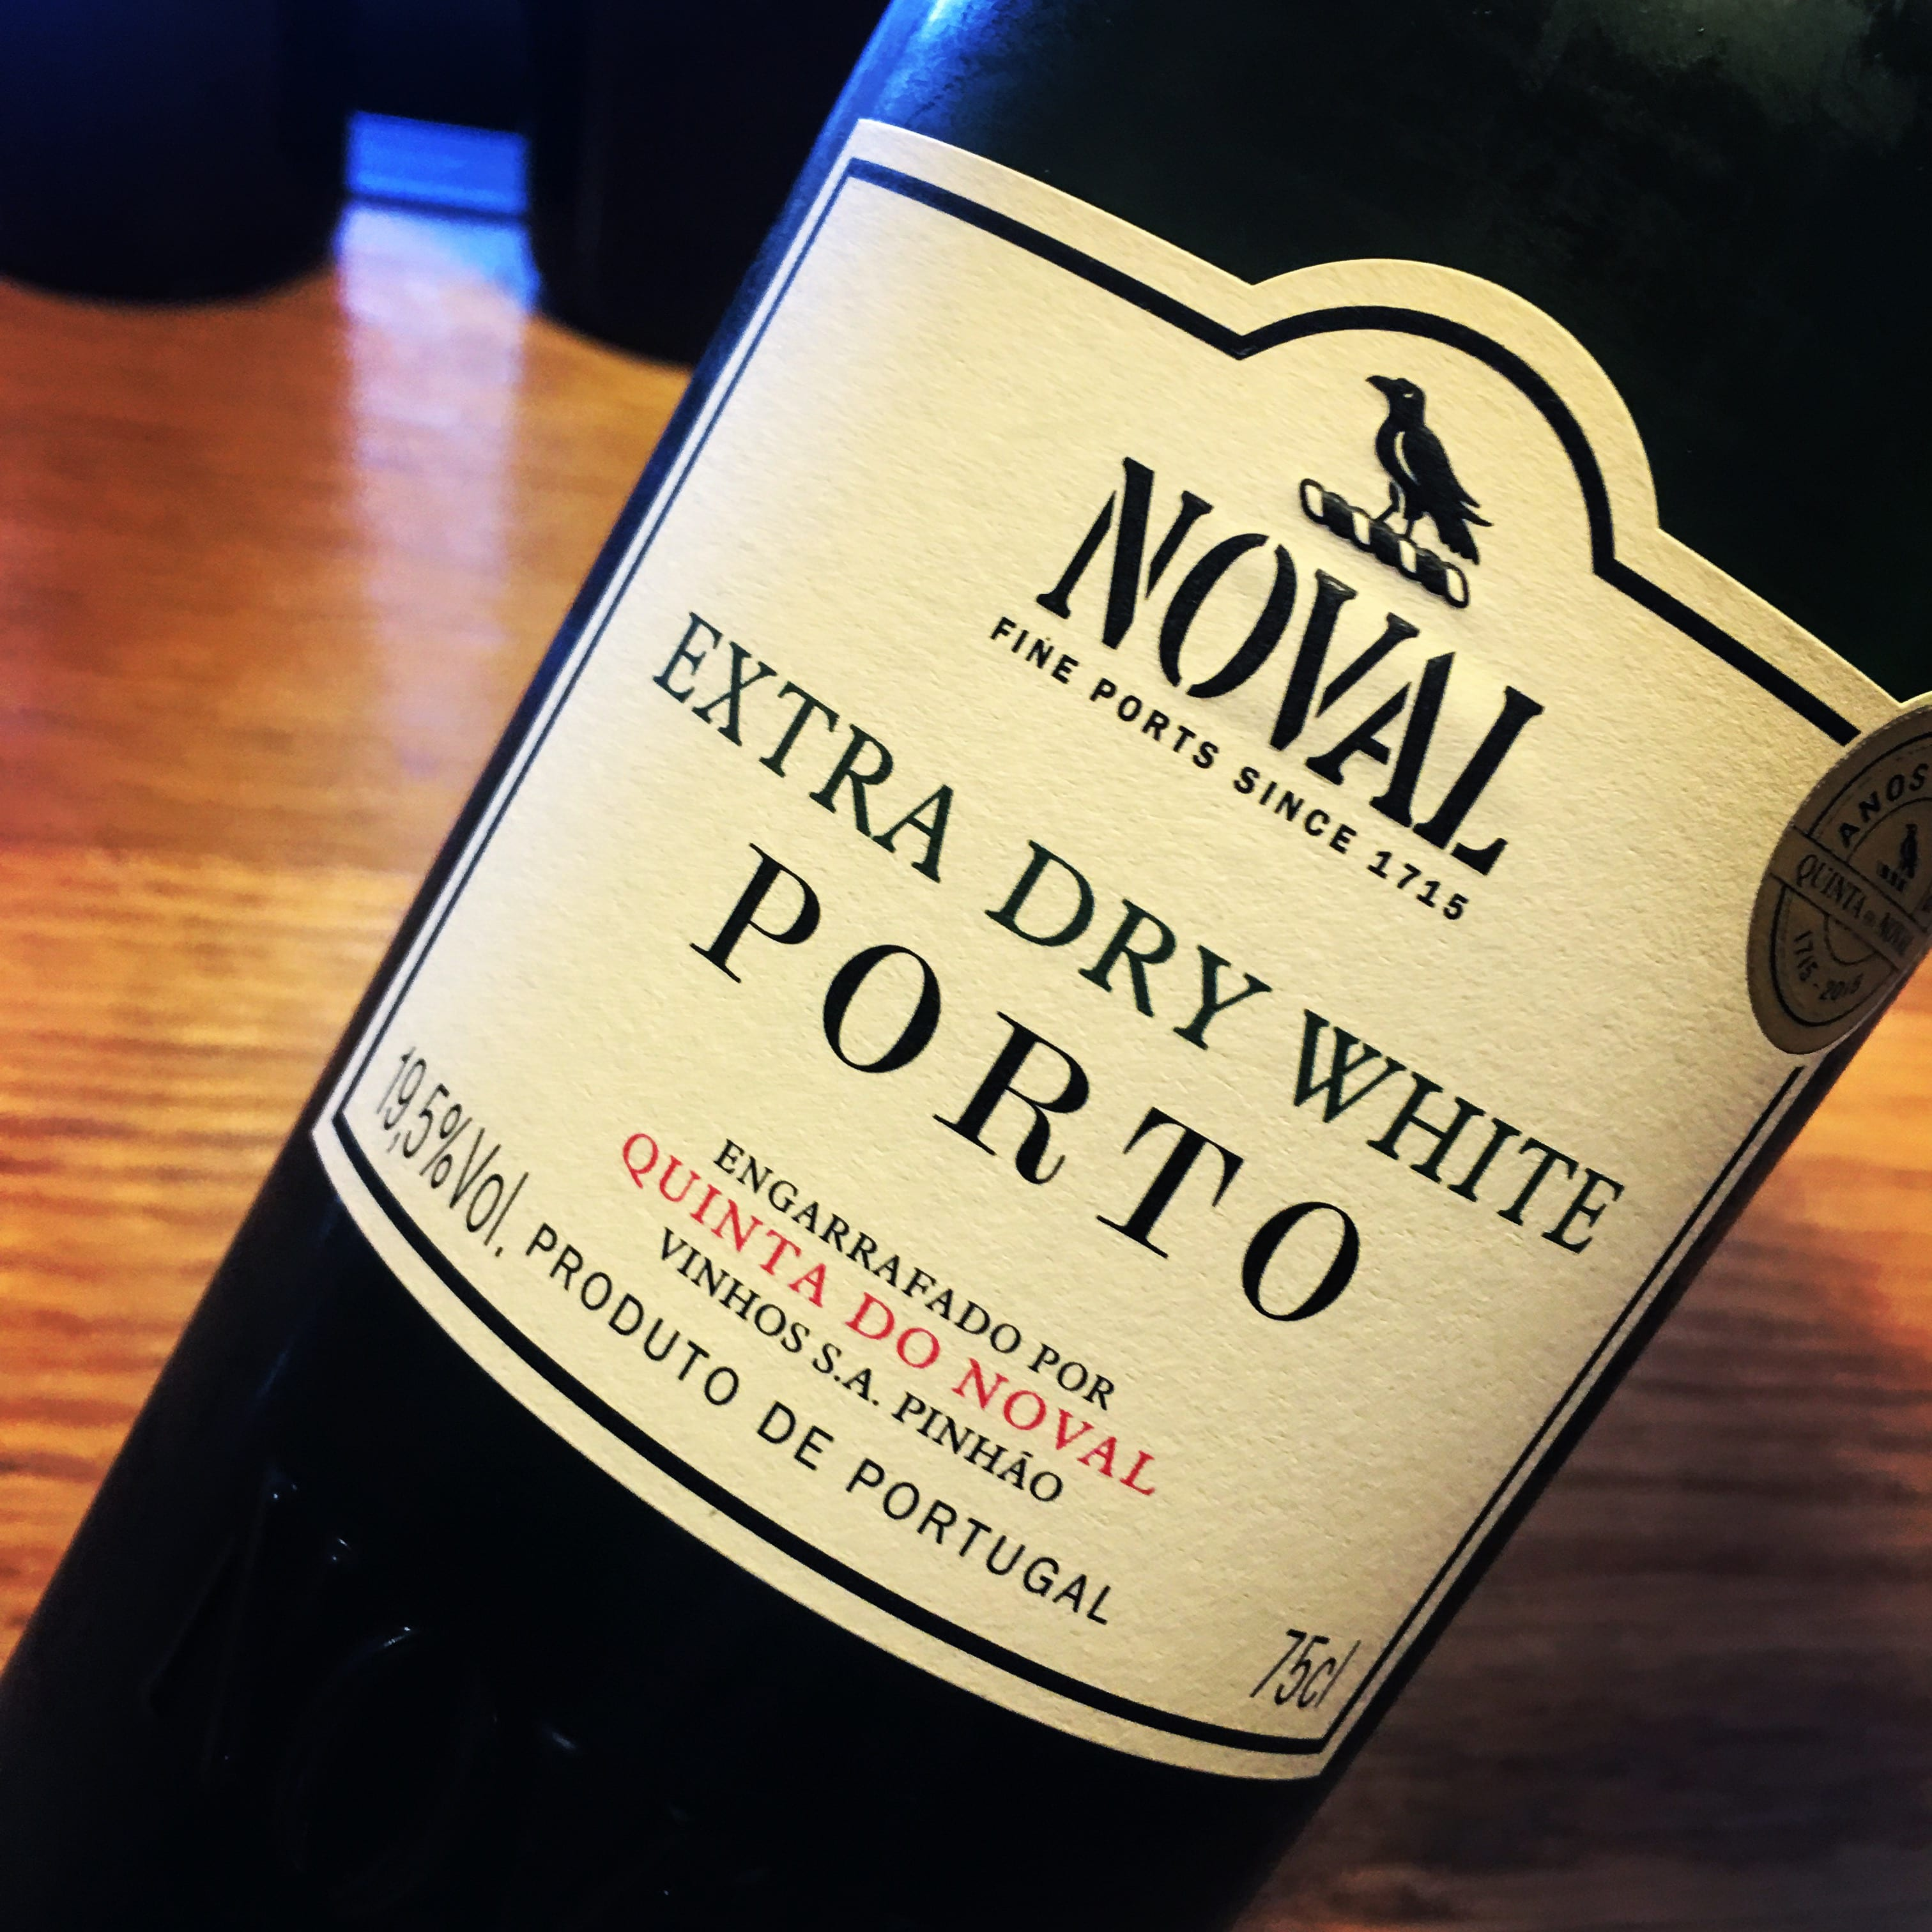 Quinta do Noval White Port Extra Dry 2008